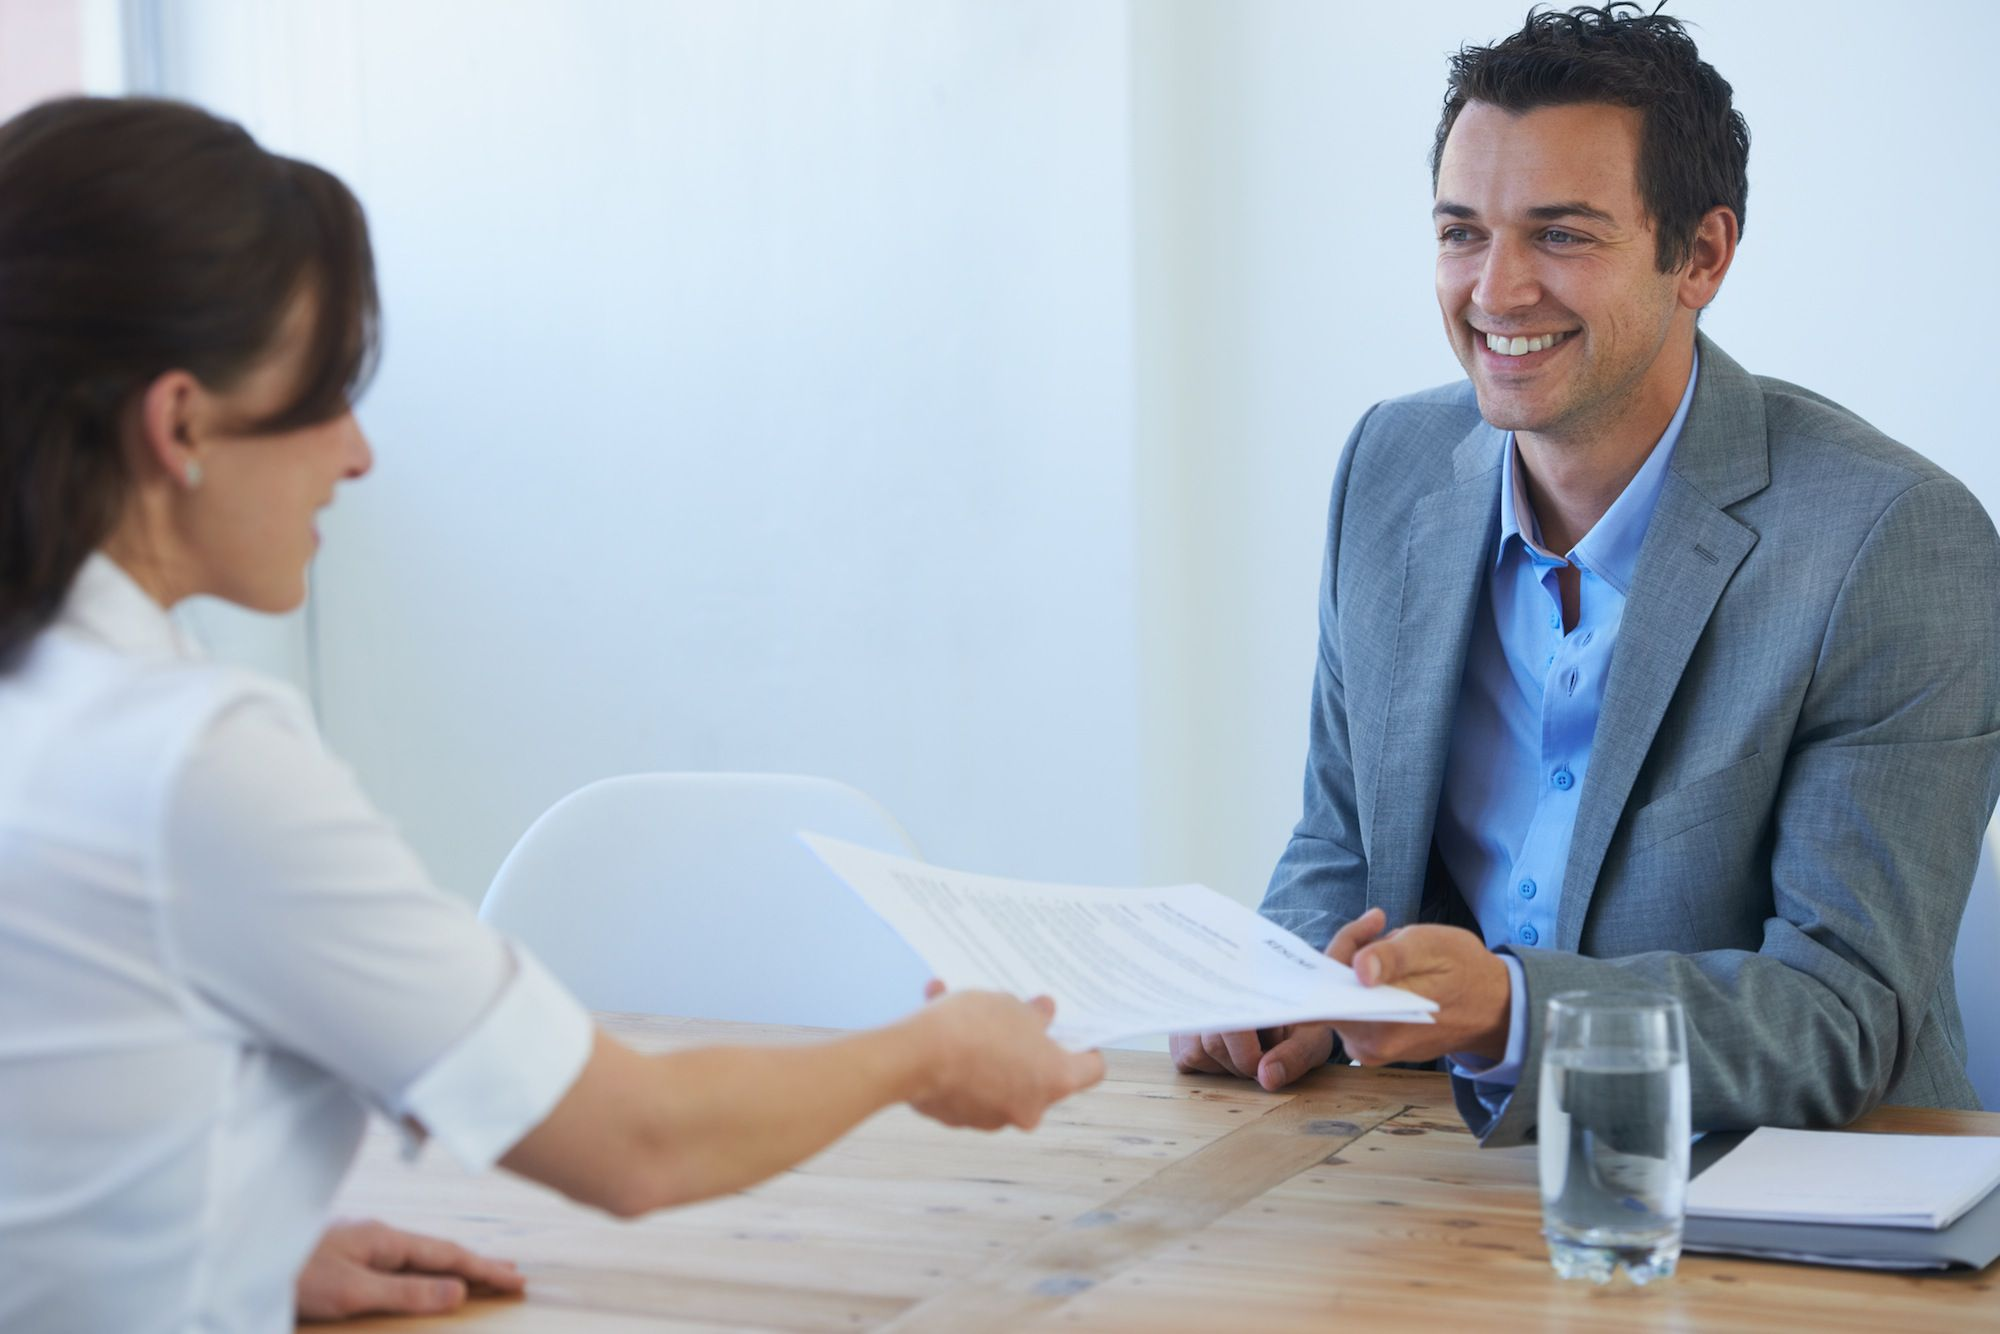 practice interview tips and techniques